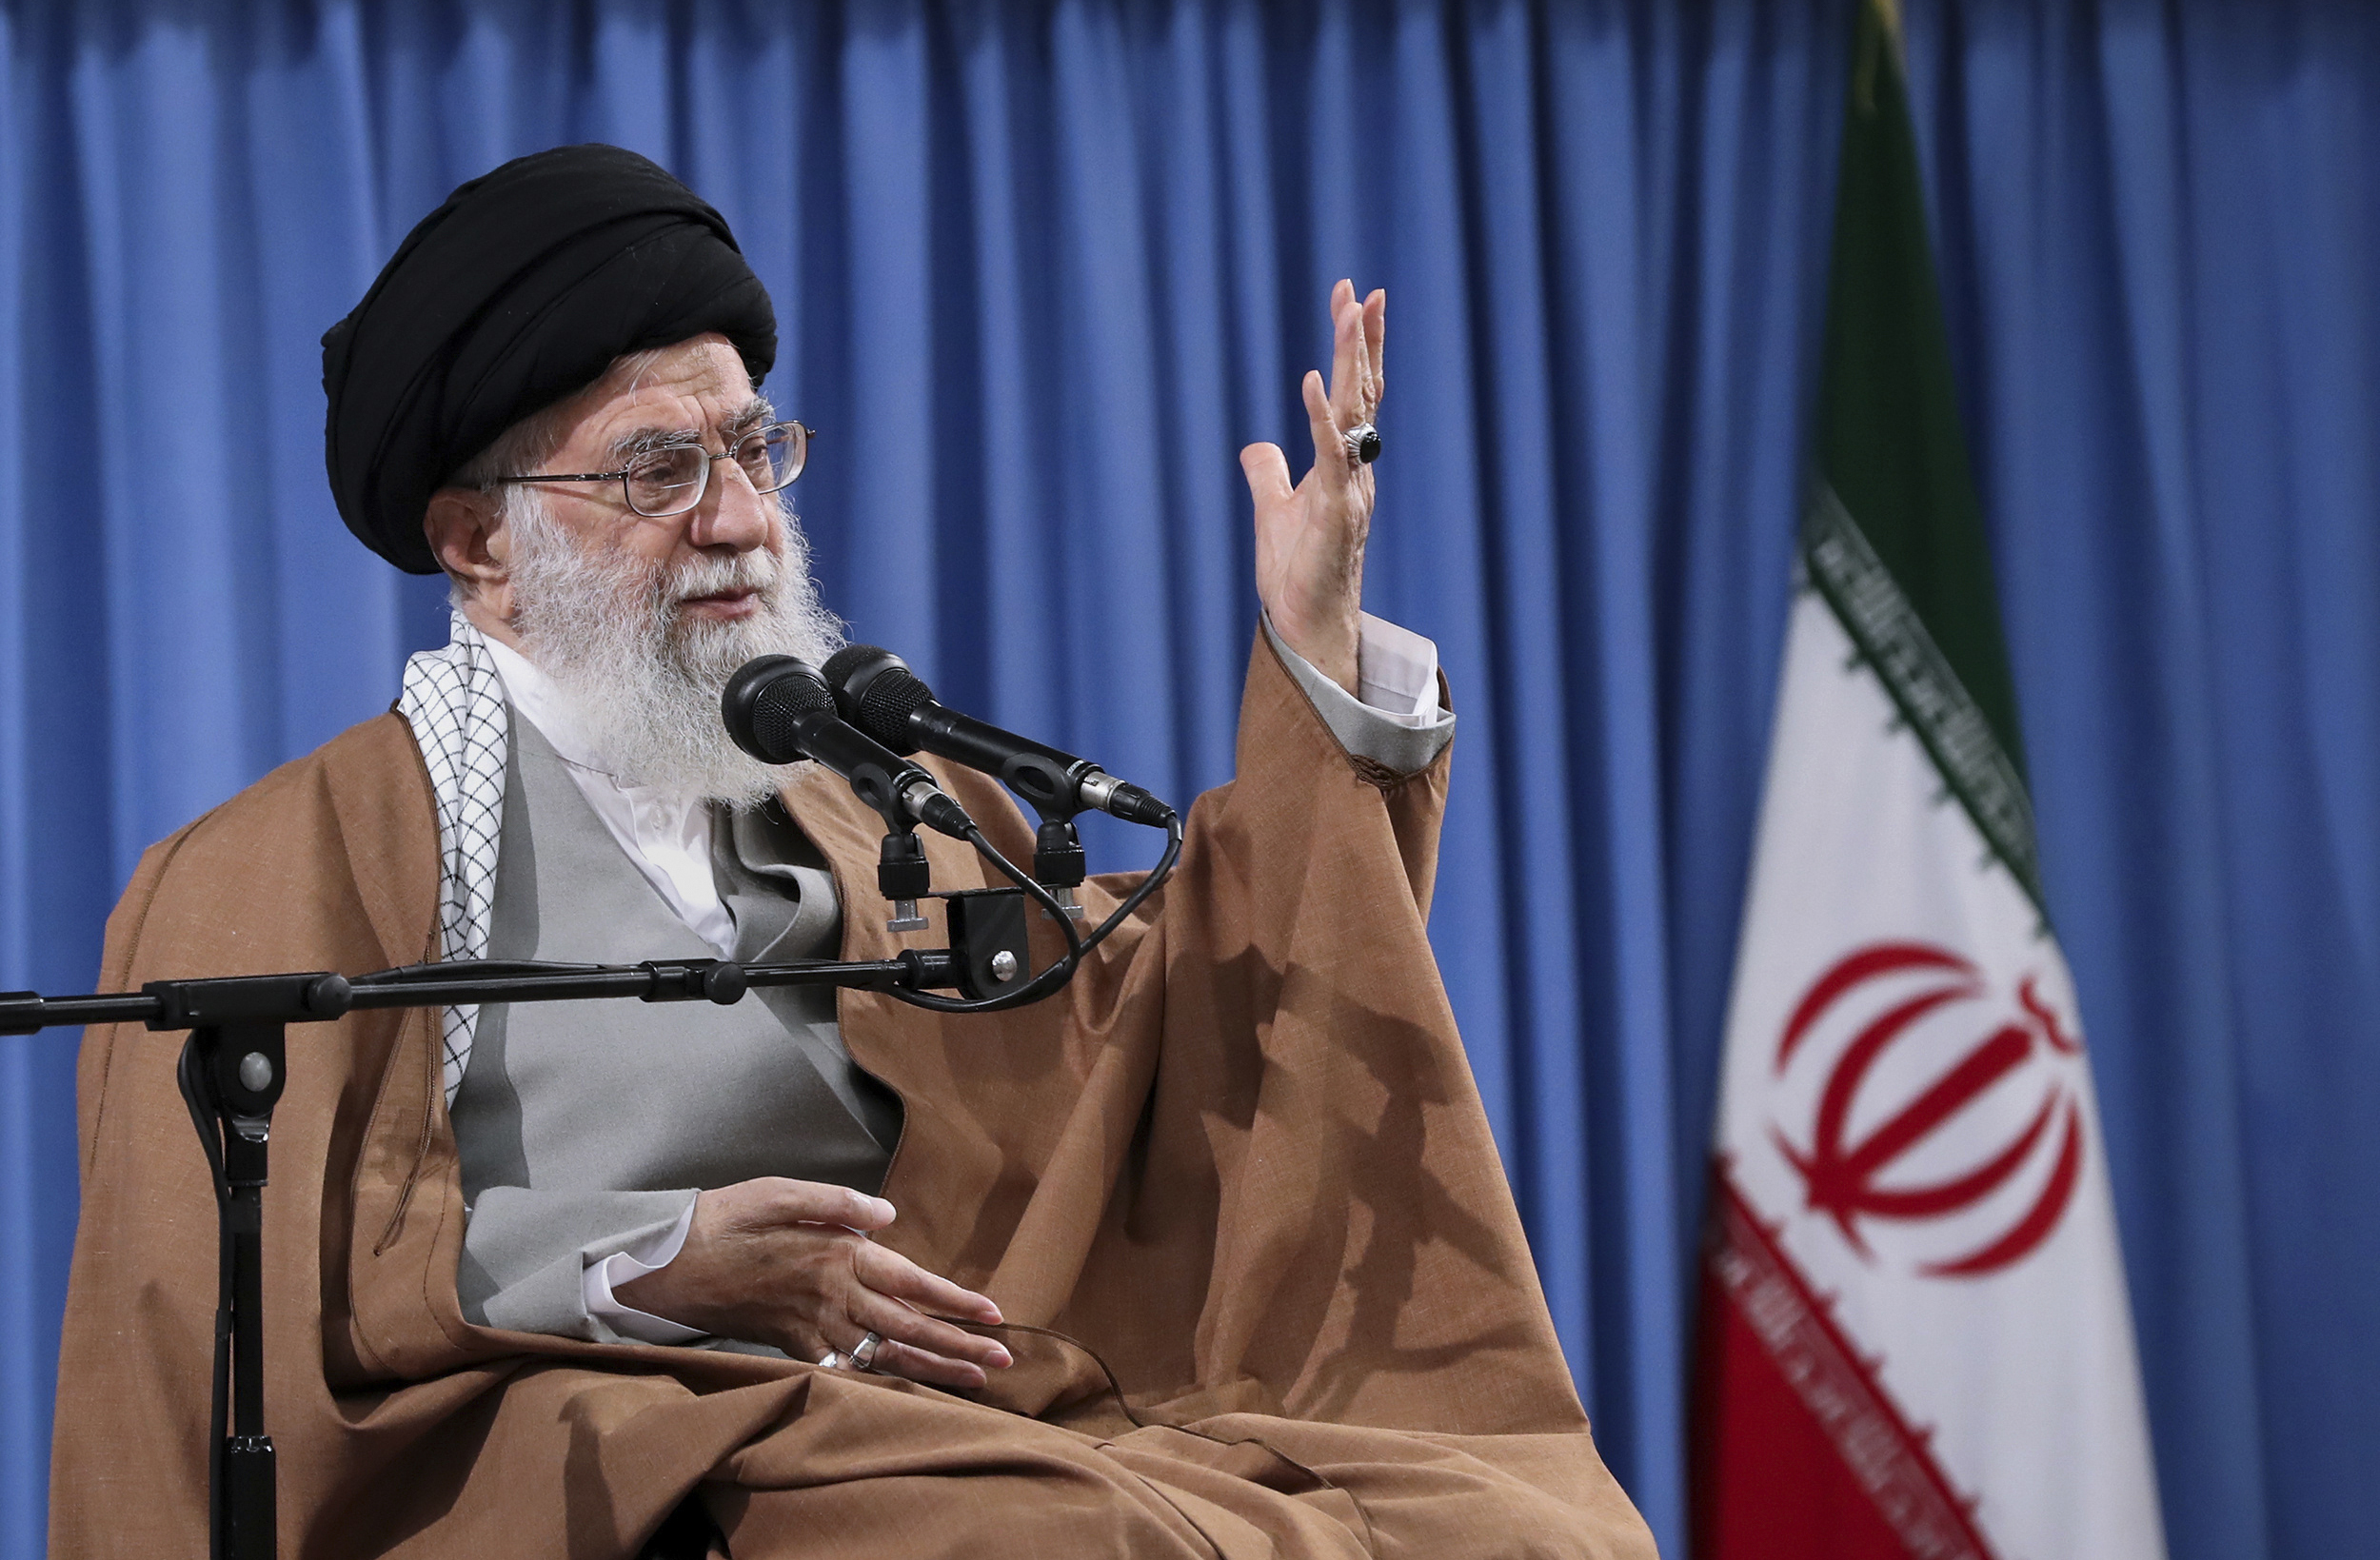 What Are Iran's Options In The Standoff With The U.S.?